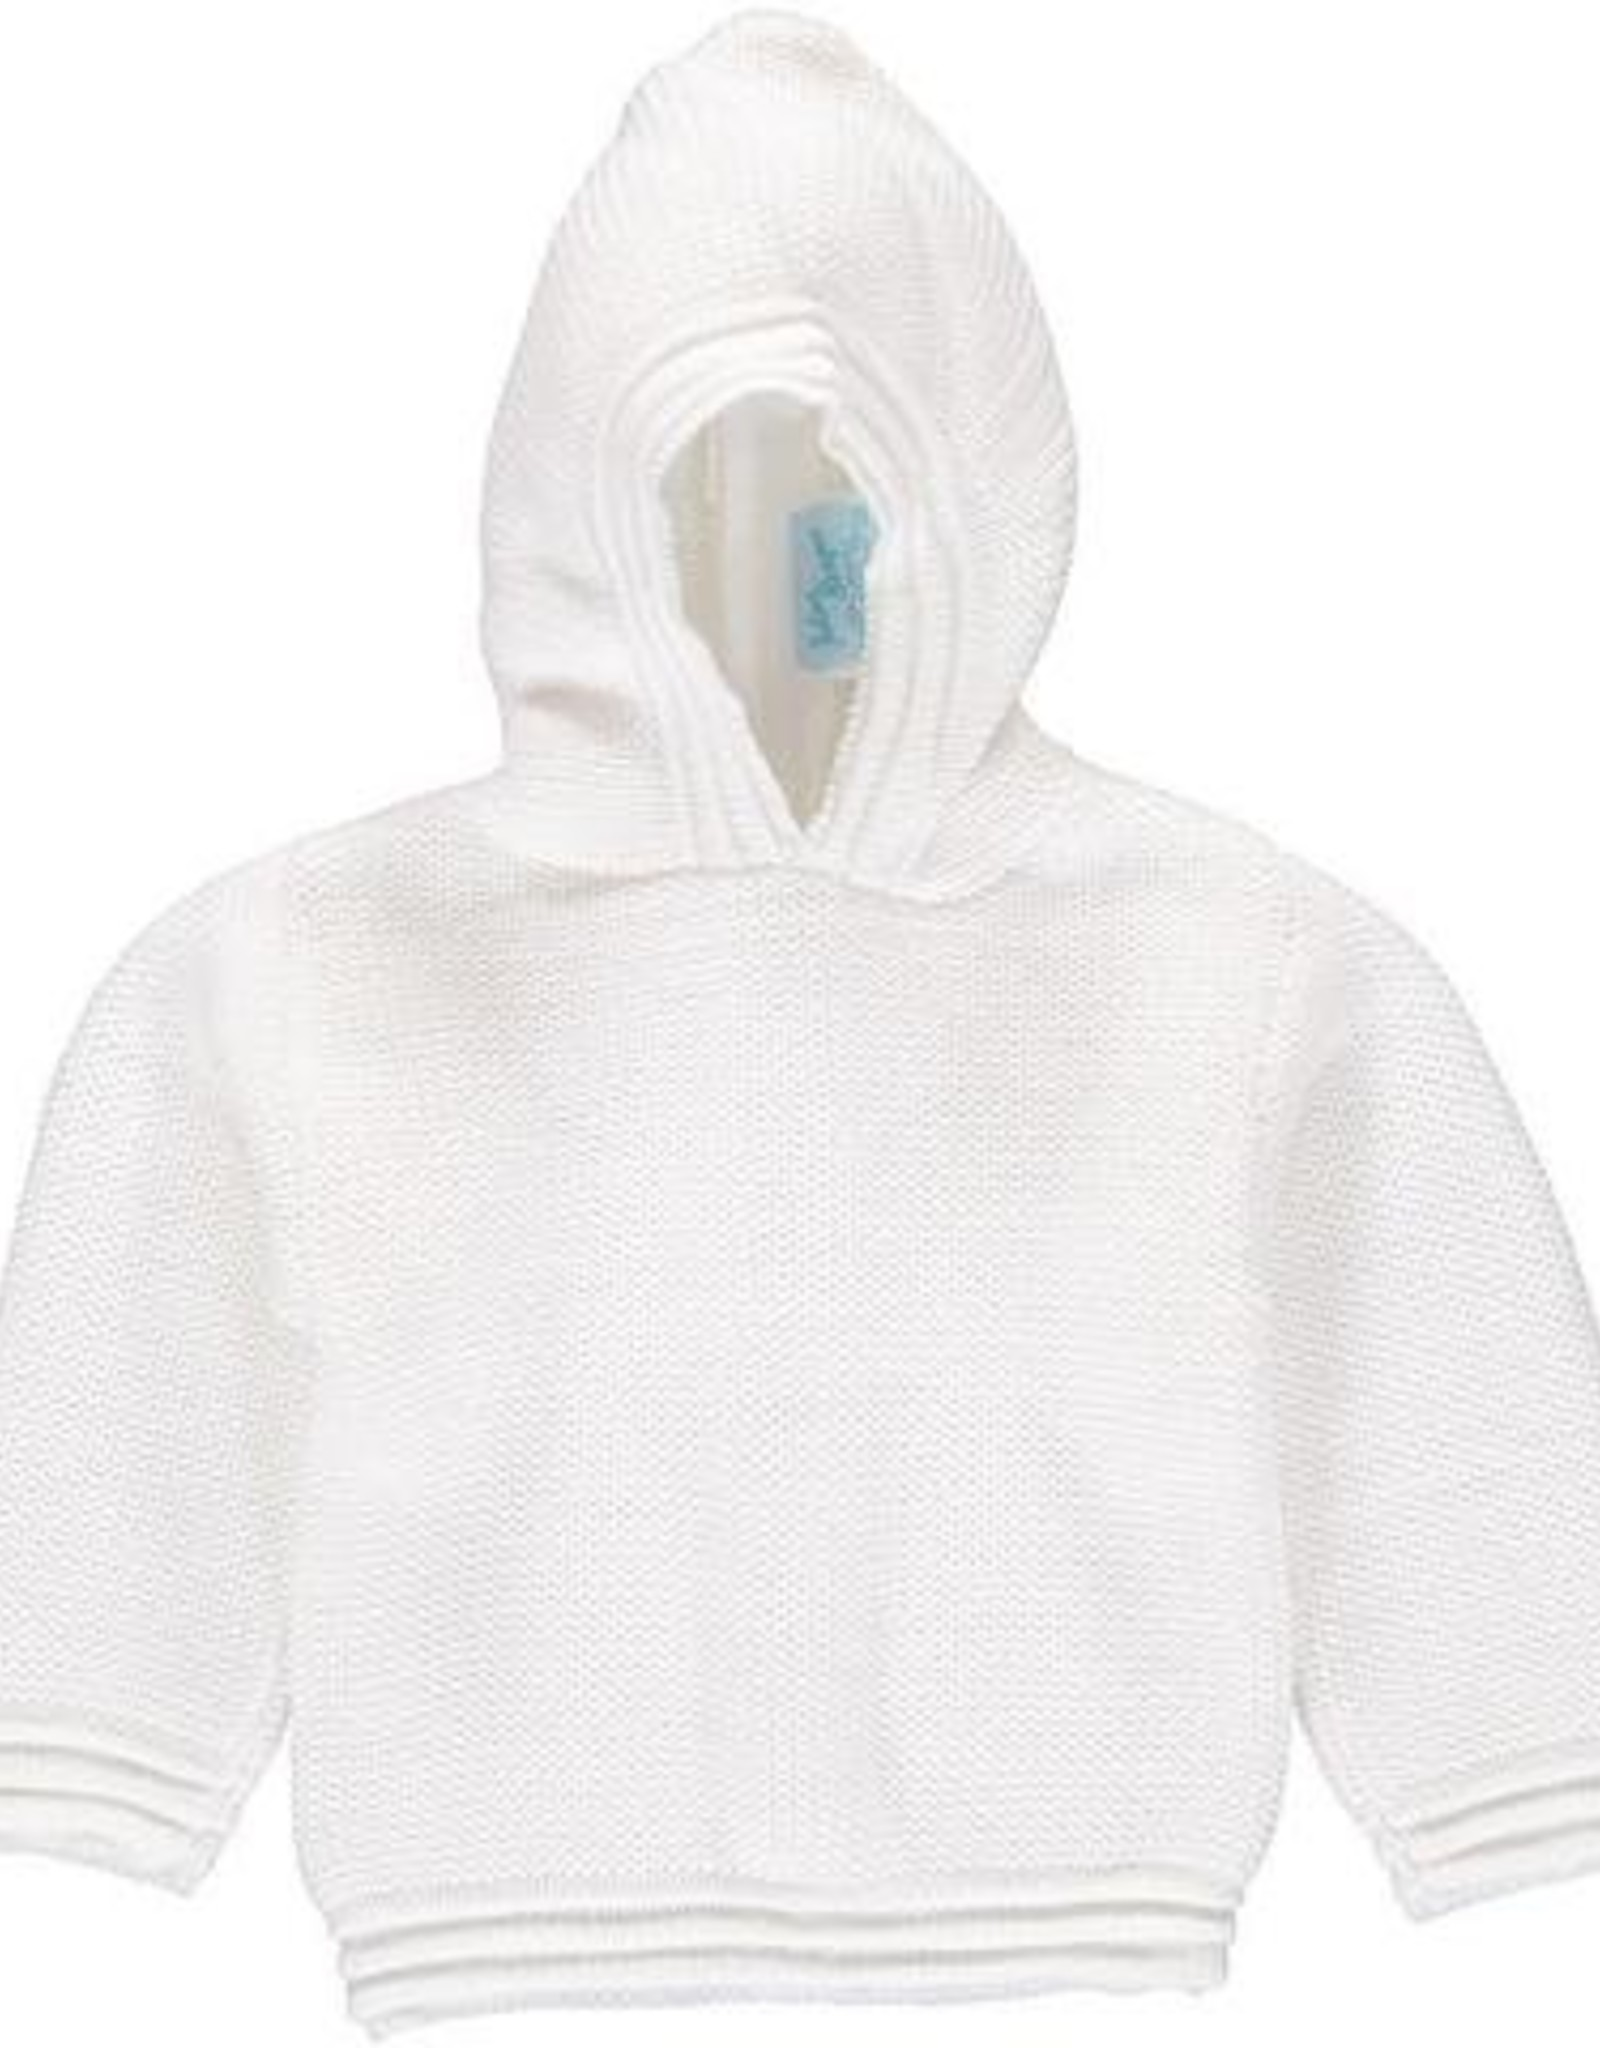 Carriage Boutique Acrylic White White  Hooded Sweater